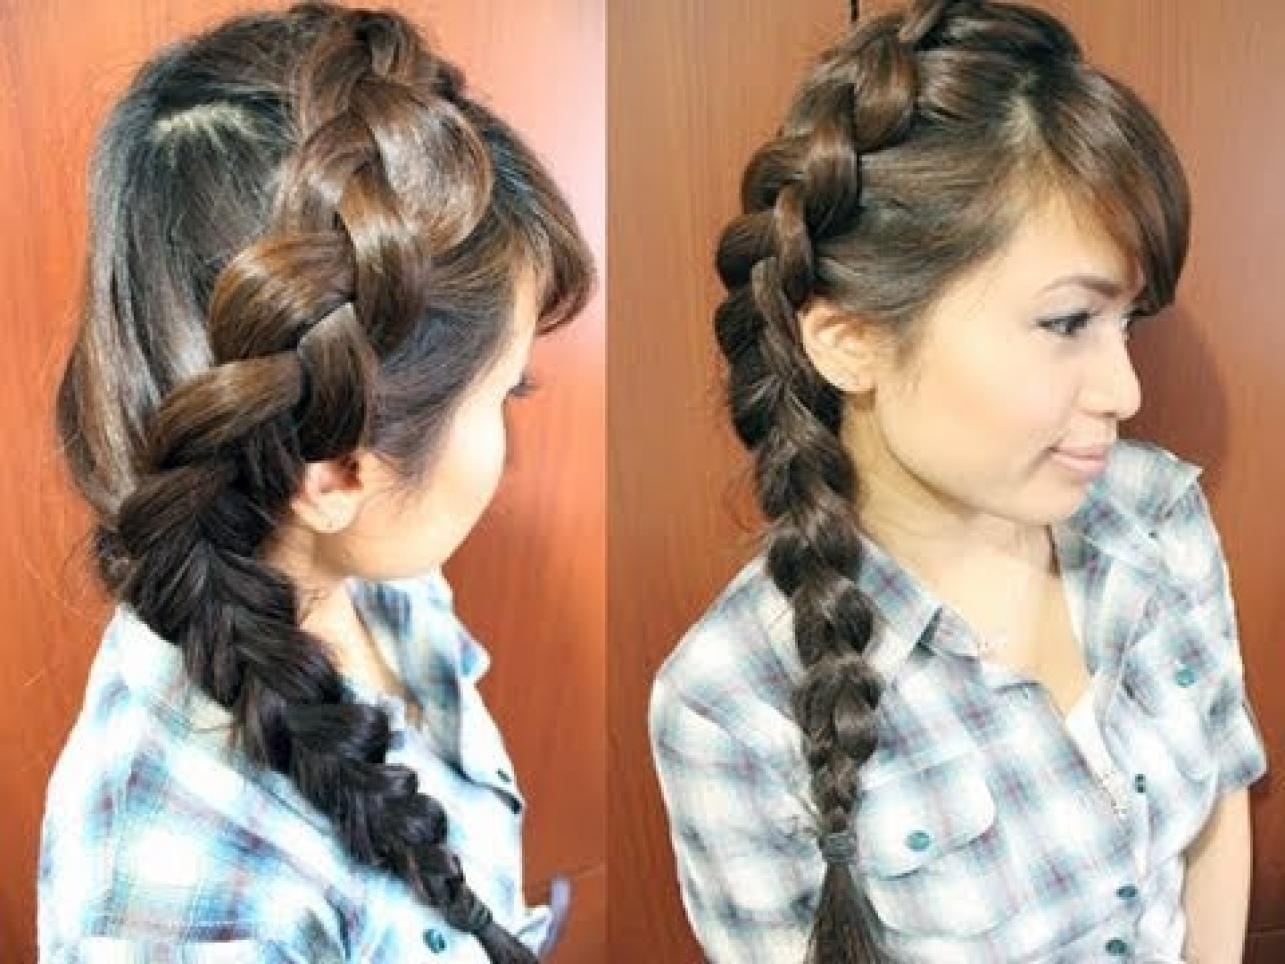 Hairstyles Braids: Style Dhoom: Braided Hairstyles Fashion Trend